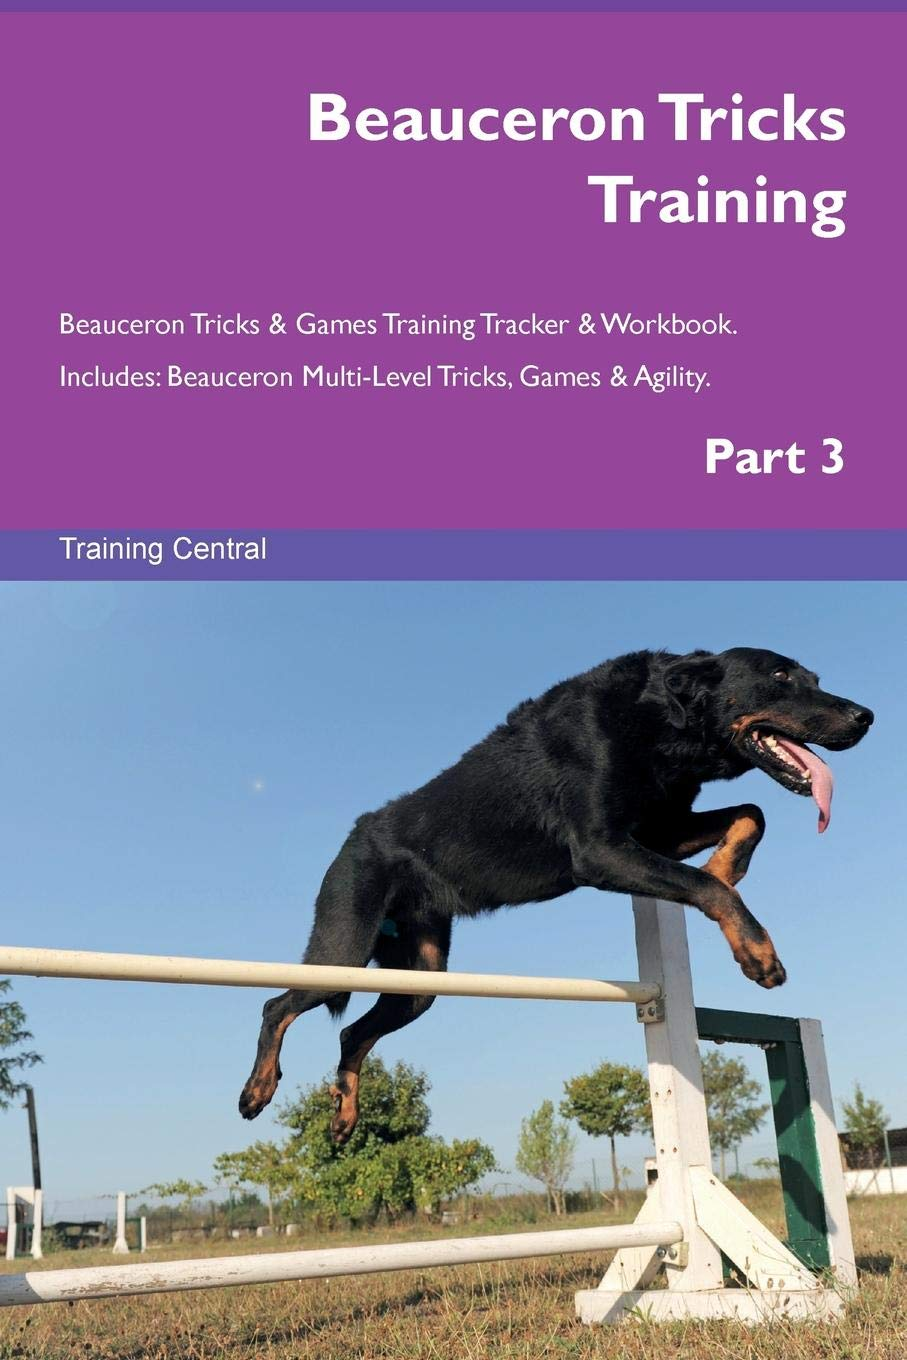 Beauceron Tricks Training Beauceron Tricks & Games Training Tracker & Workbook. Includes: Beauceron Multi-Level Tricks…